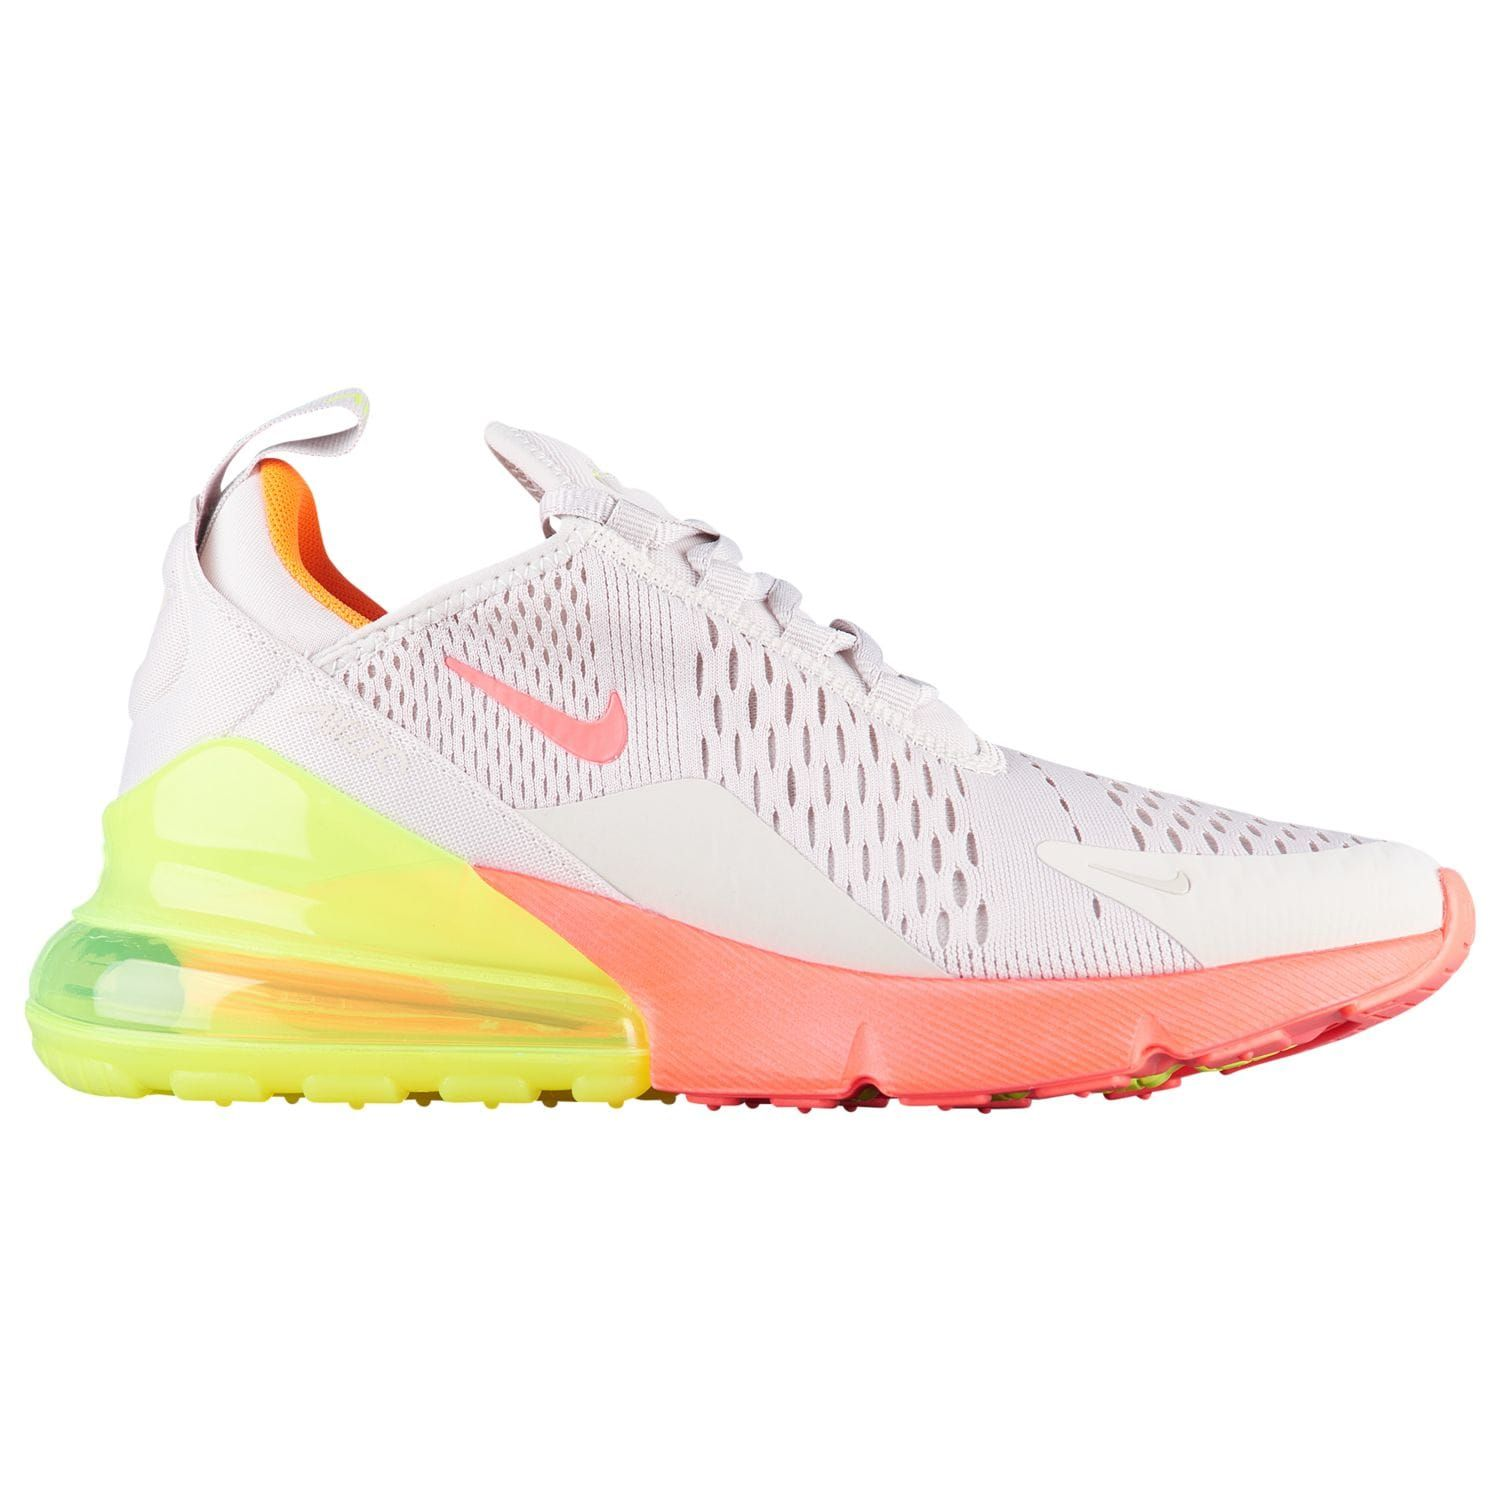 c251eaedf509 Nike Air Max 270 - Women s - Running - Shoes - Desert Sand Hot Punch Volt Total  Orange